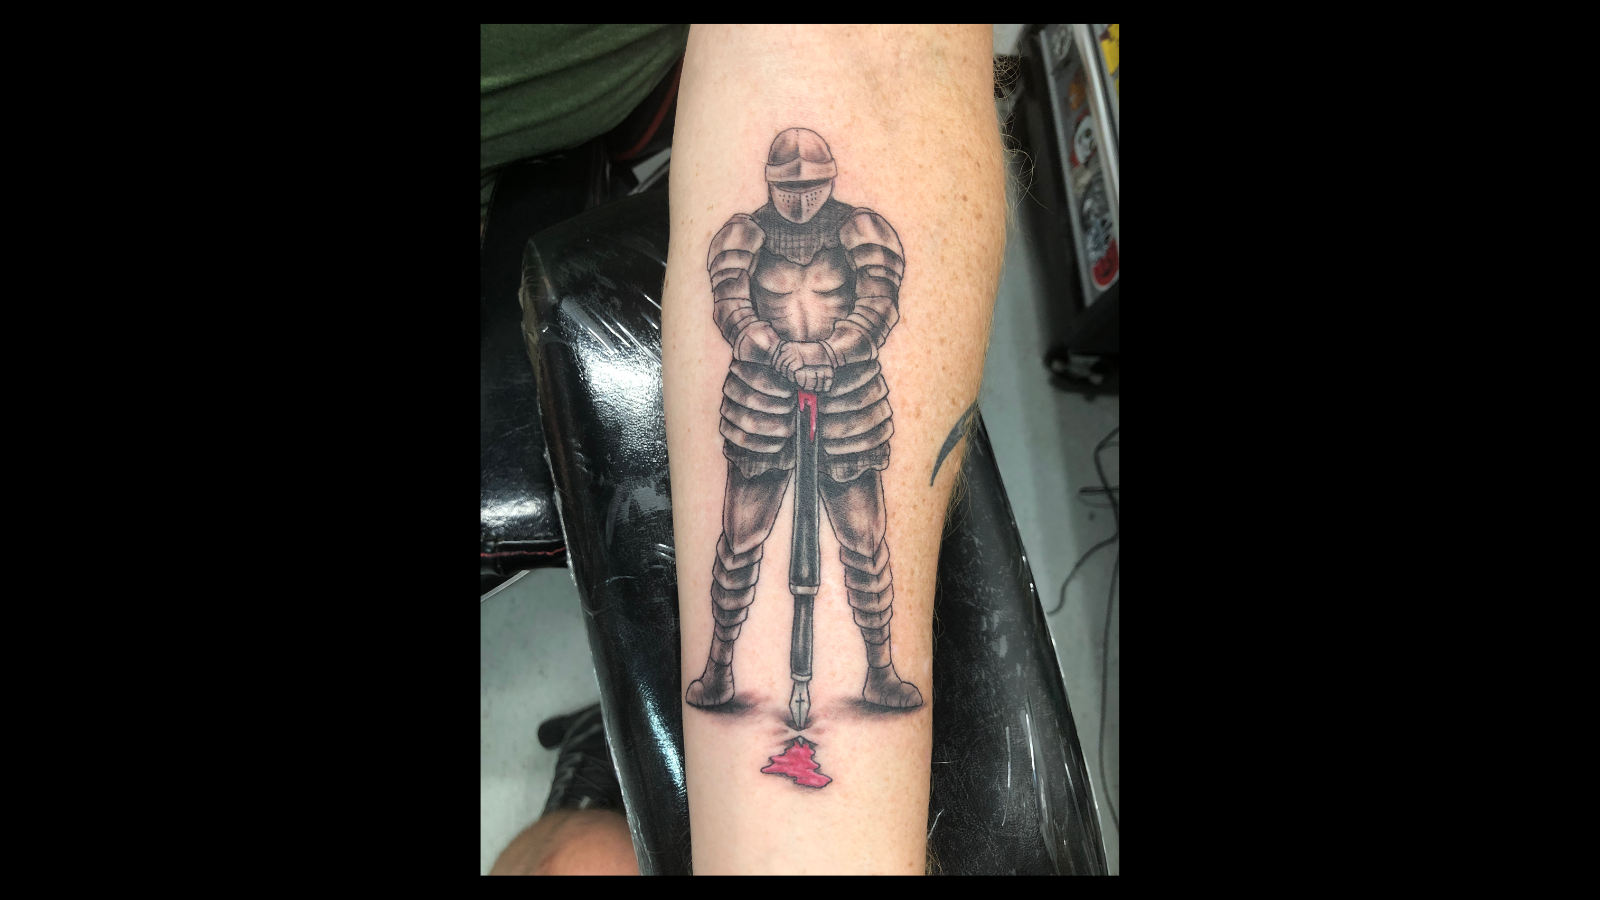 Photo of MCFIV's latest tattoo illustrating the pen is mightier than the sword